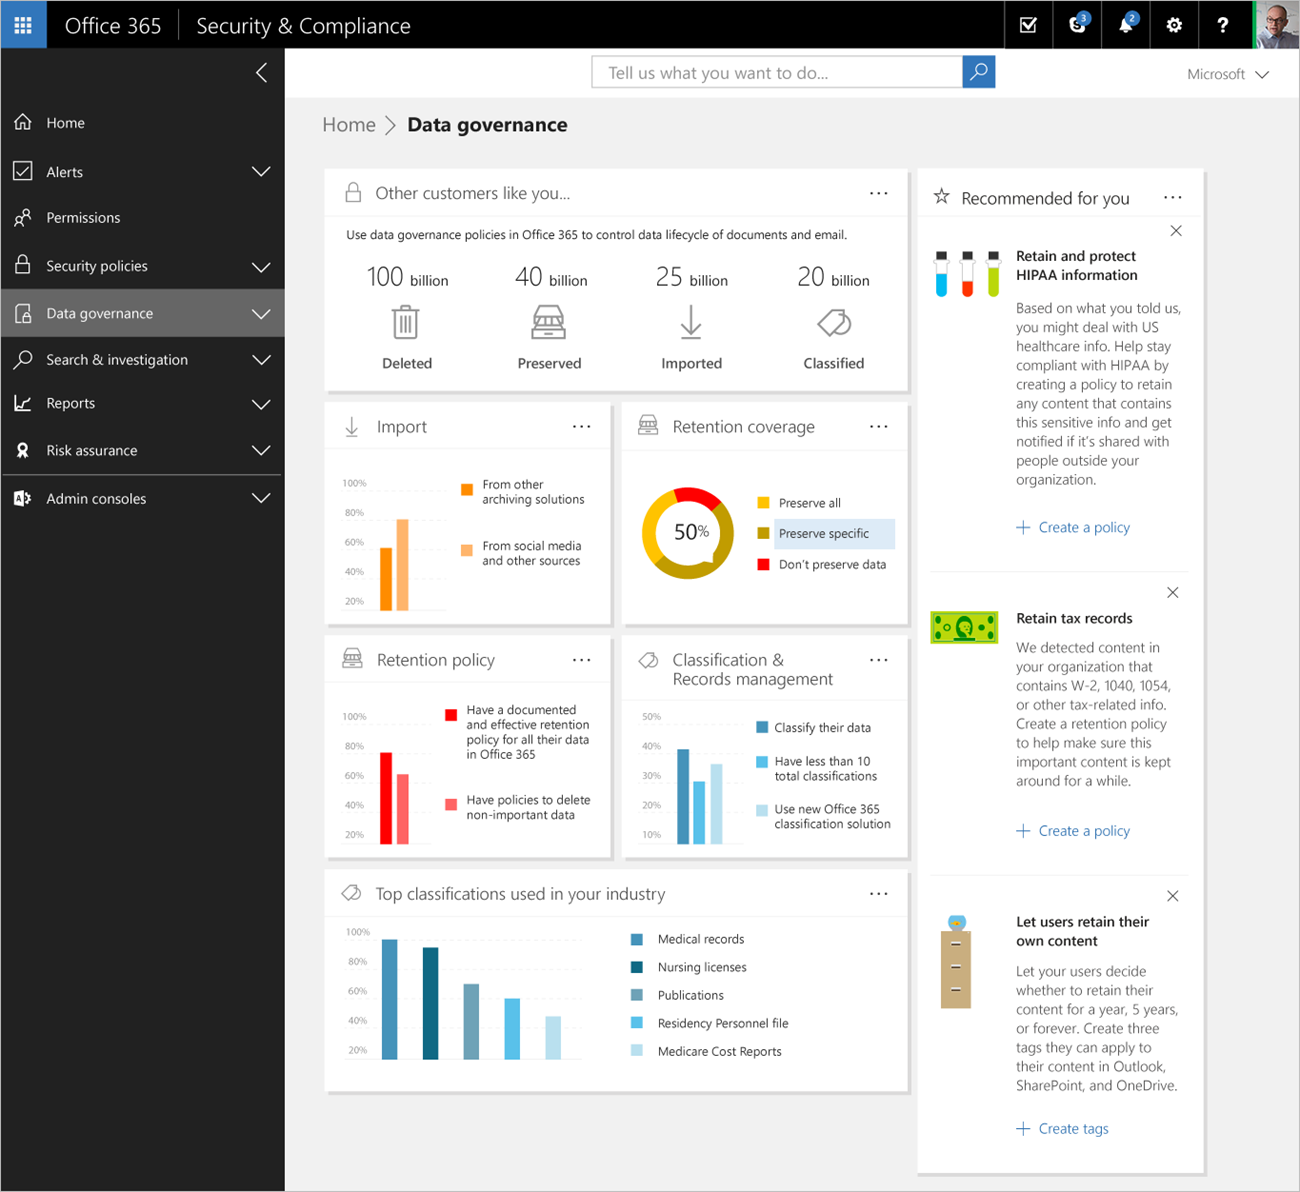 Office 365 Security Center